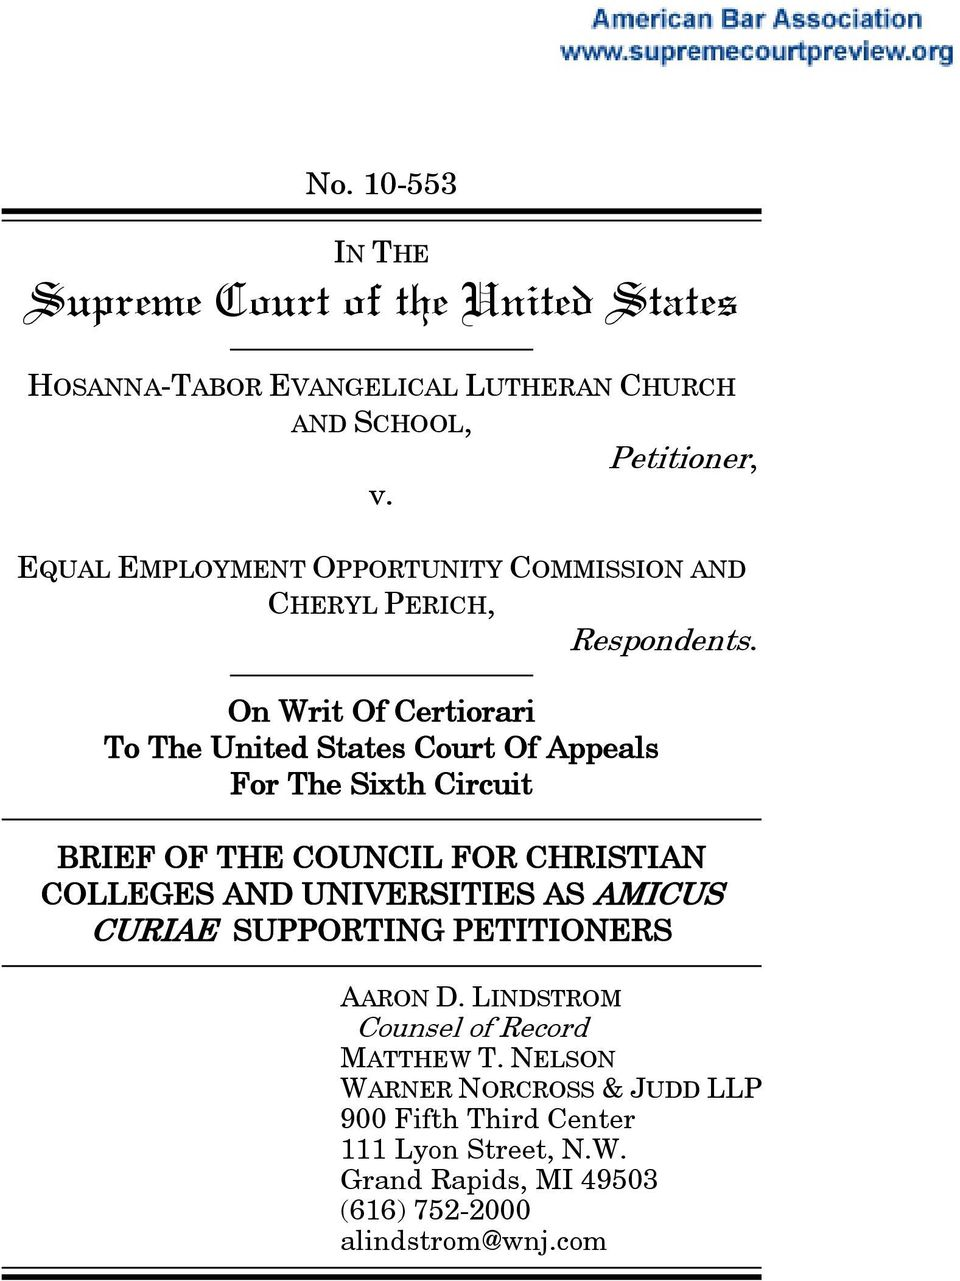 On Writ Of Certiorari To The United States Court Of Appeals For The Sixth Circuit BRIEF OF THE COUNCIL FOR CHRISTIAN COLLEGES AND